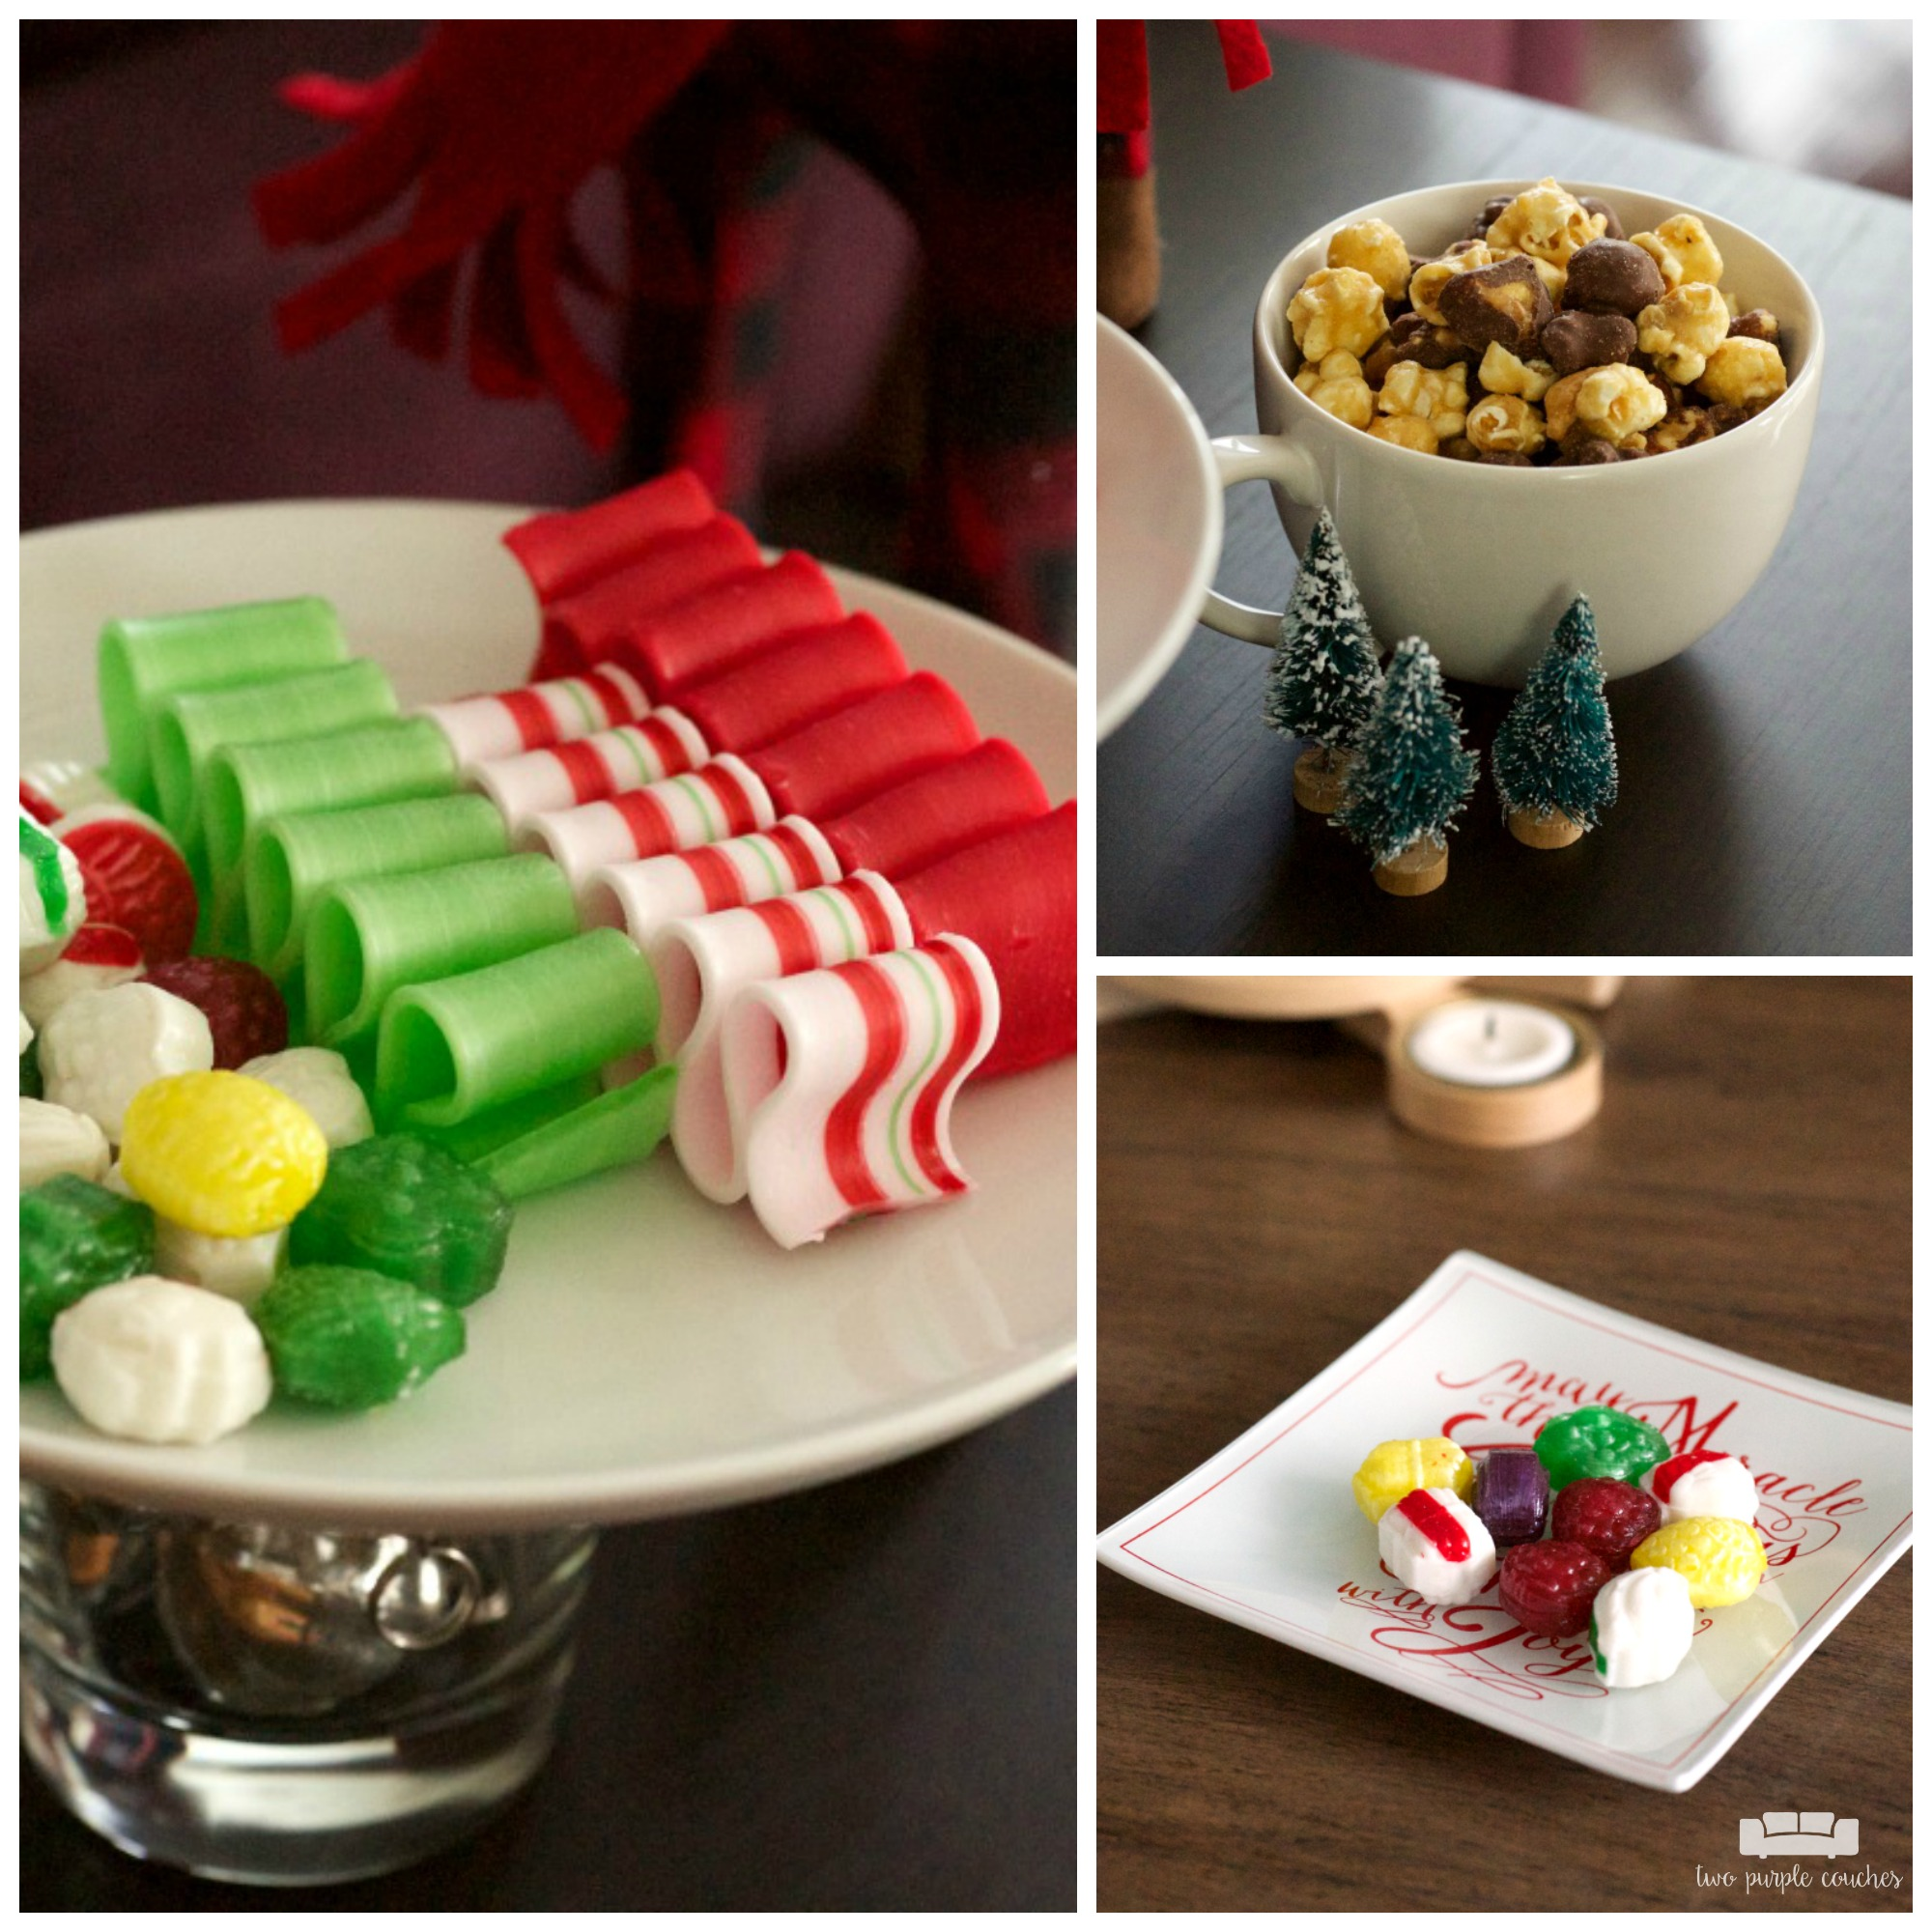 Classic candies and sweets for a cozy holiday home